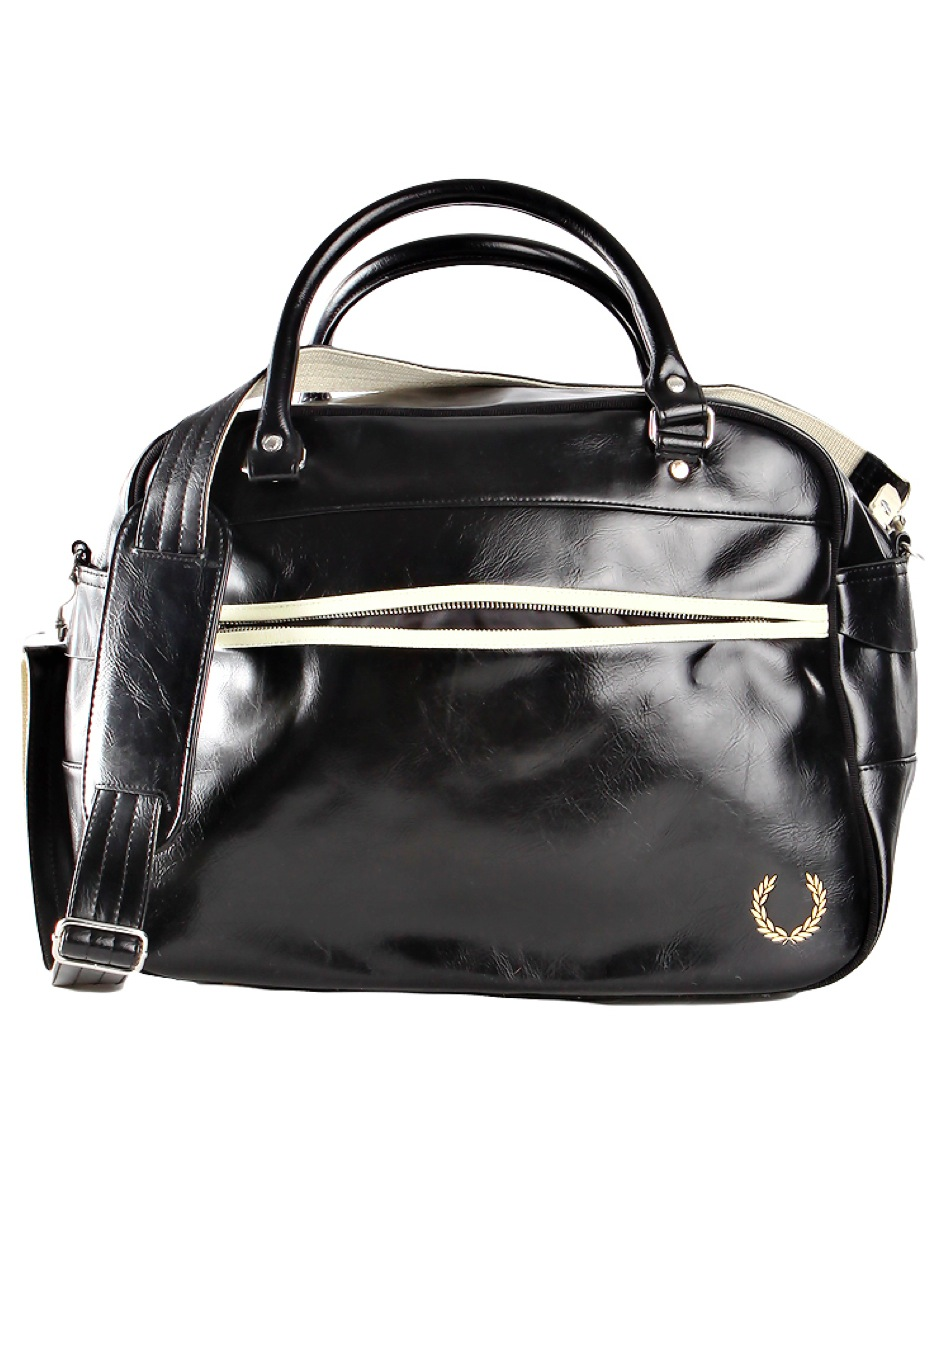 Fred Perry - Overnight - Bag - Streetwear Shop - Impericon.com Worldwide 7c4aa07d964a9